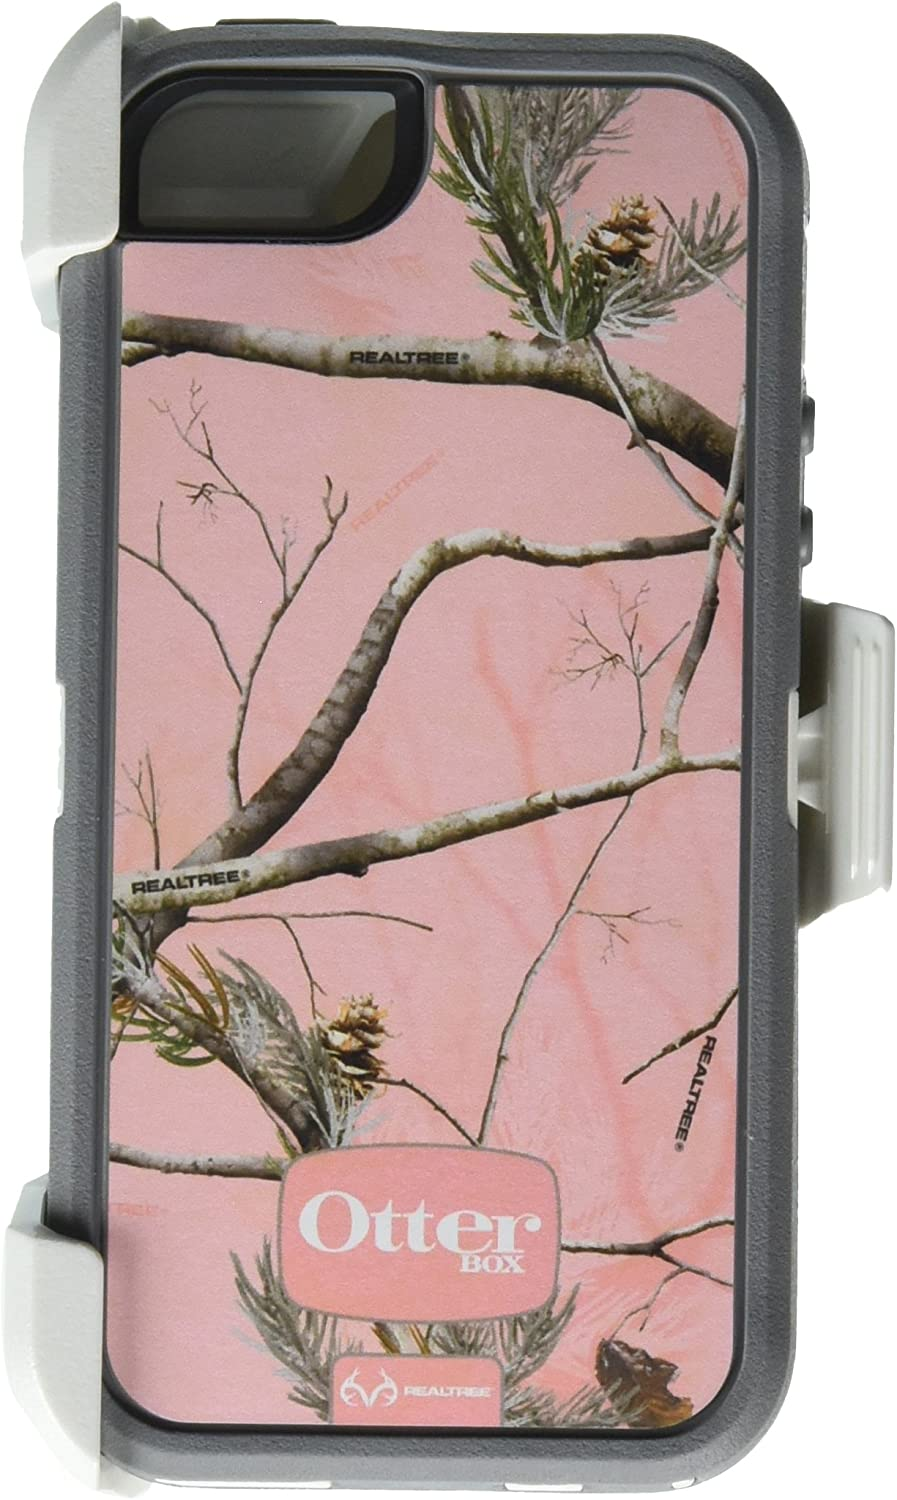 OtterBox Defender Series Case for iPhone 5 - Retail Packaging - AP Pink (Discontinued by Manufacturer)